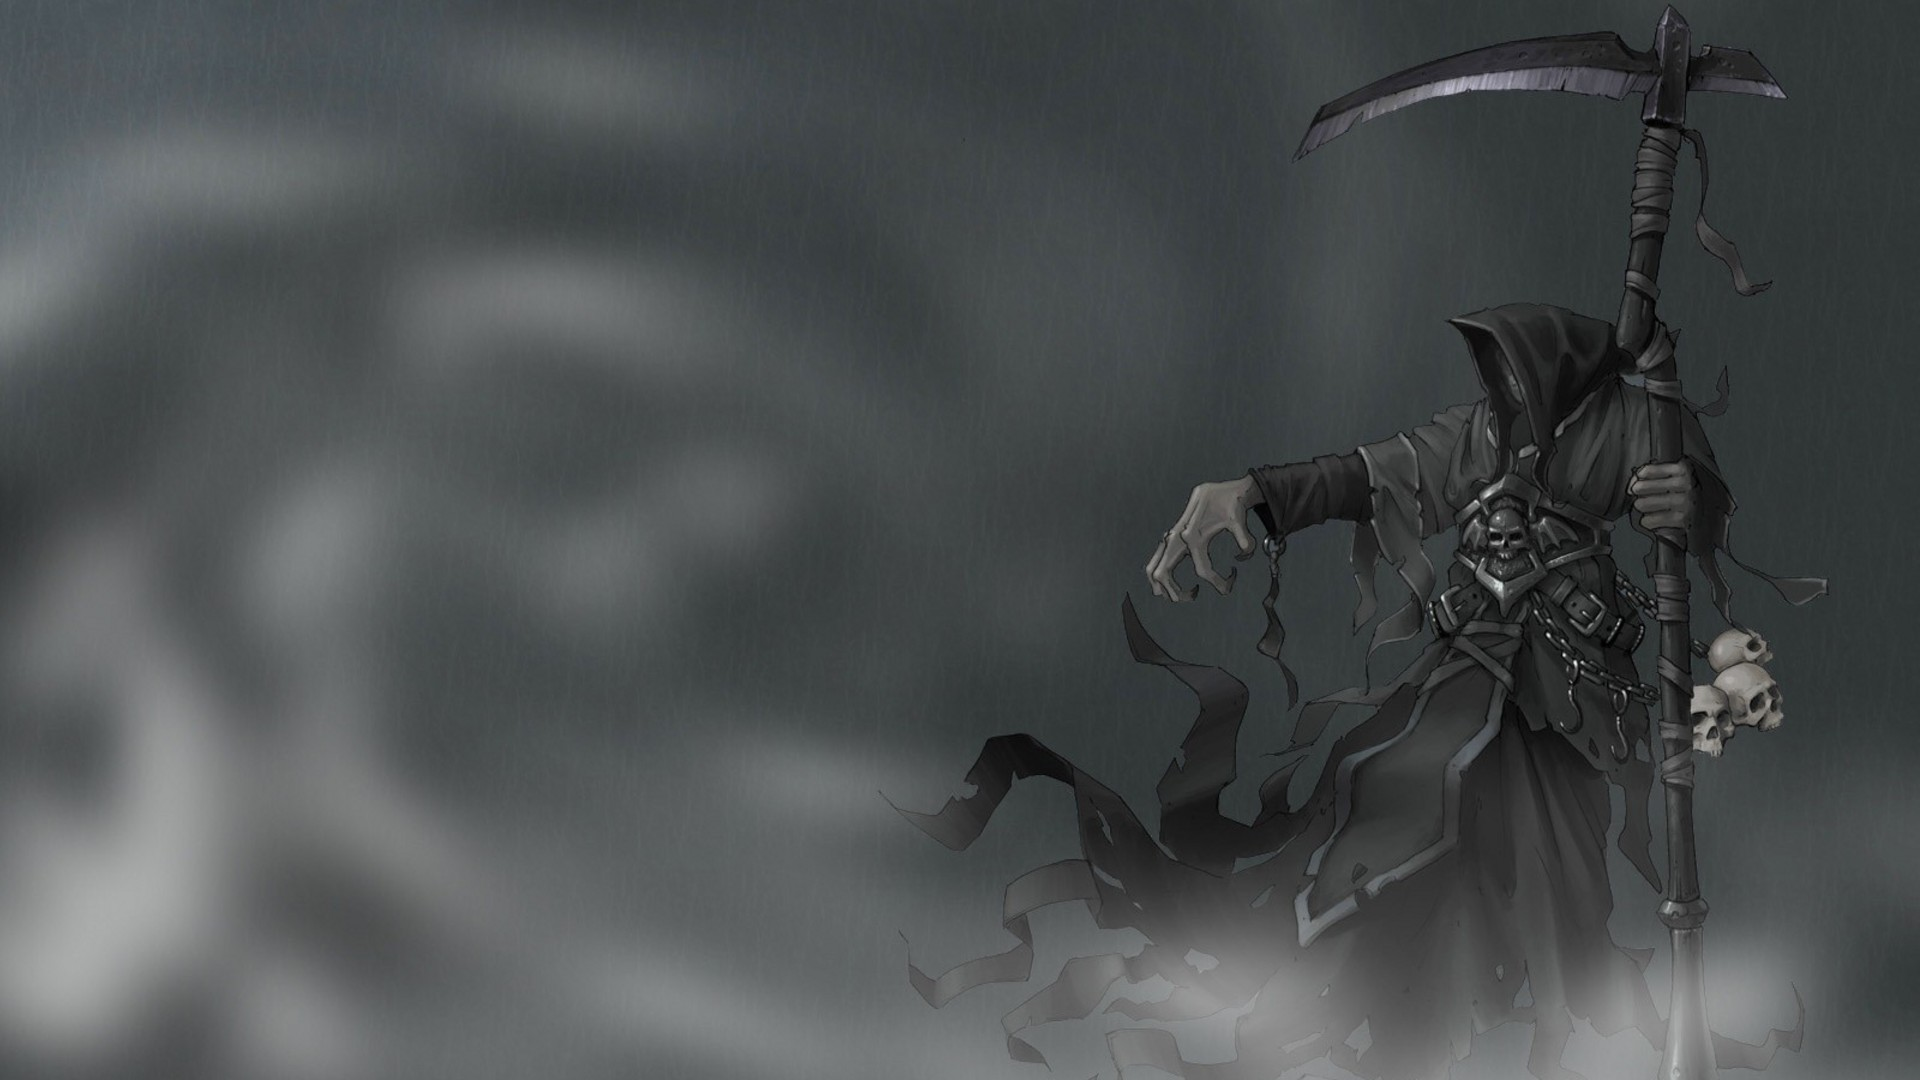 Grim Reaper Full HD Wallpaper and Background Image ...